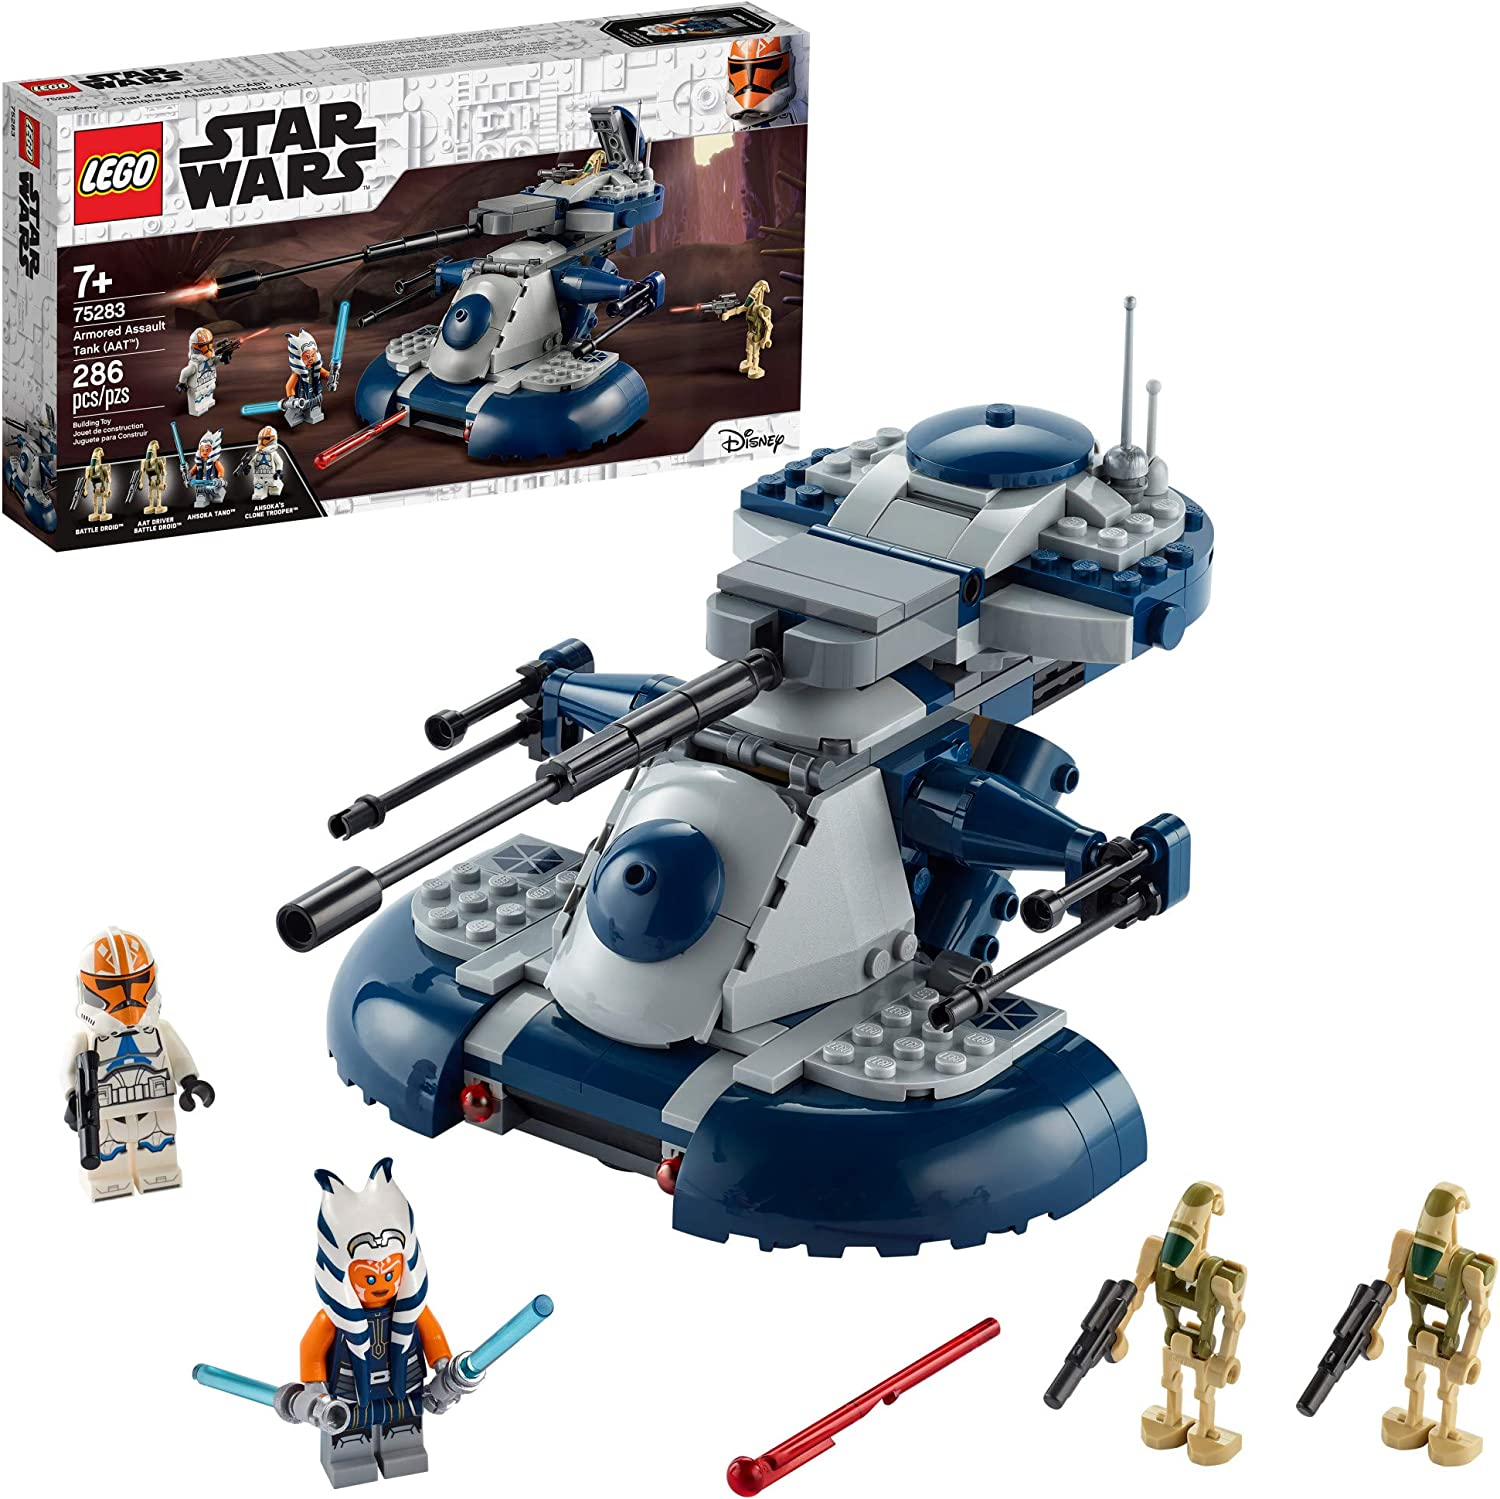 Amazon Com Lego Star Wars The Clone Wars Armored Assault Tank Aat 75283 Building Kit Awesome Construction Toy For Kids With Ahsoka Tano Plus Battle Droid Action Figures New 2020 286 Pieces Toys